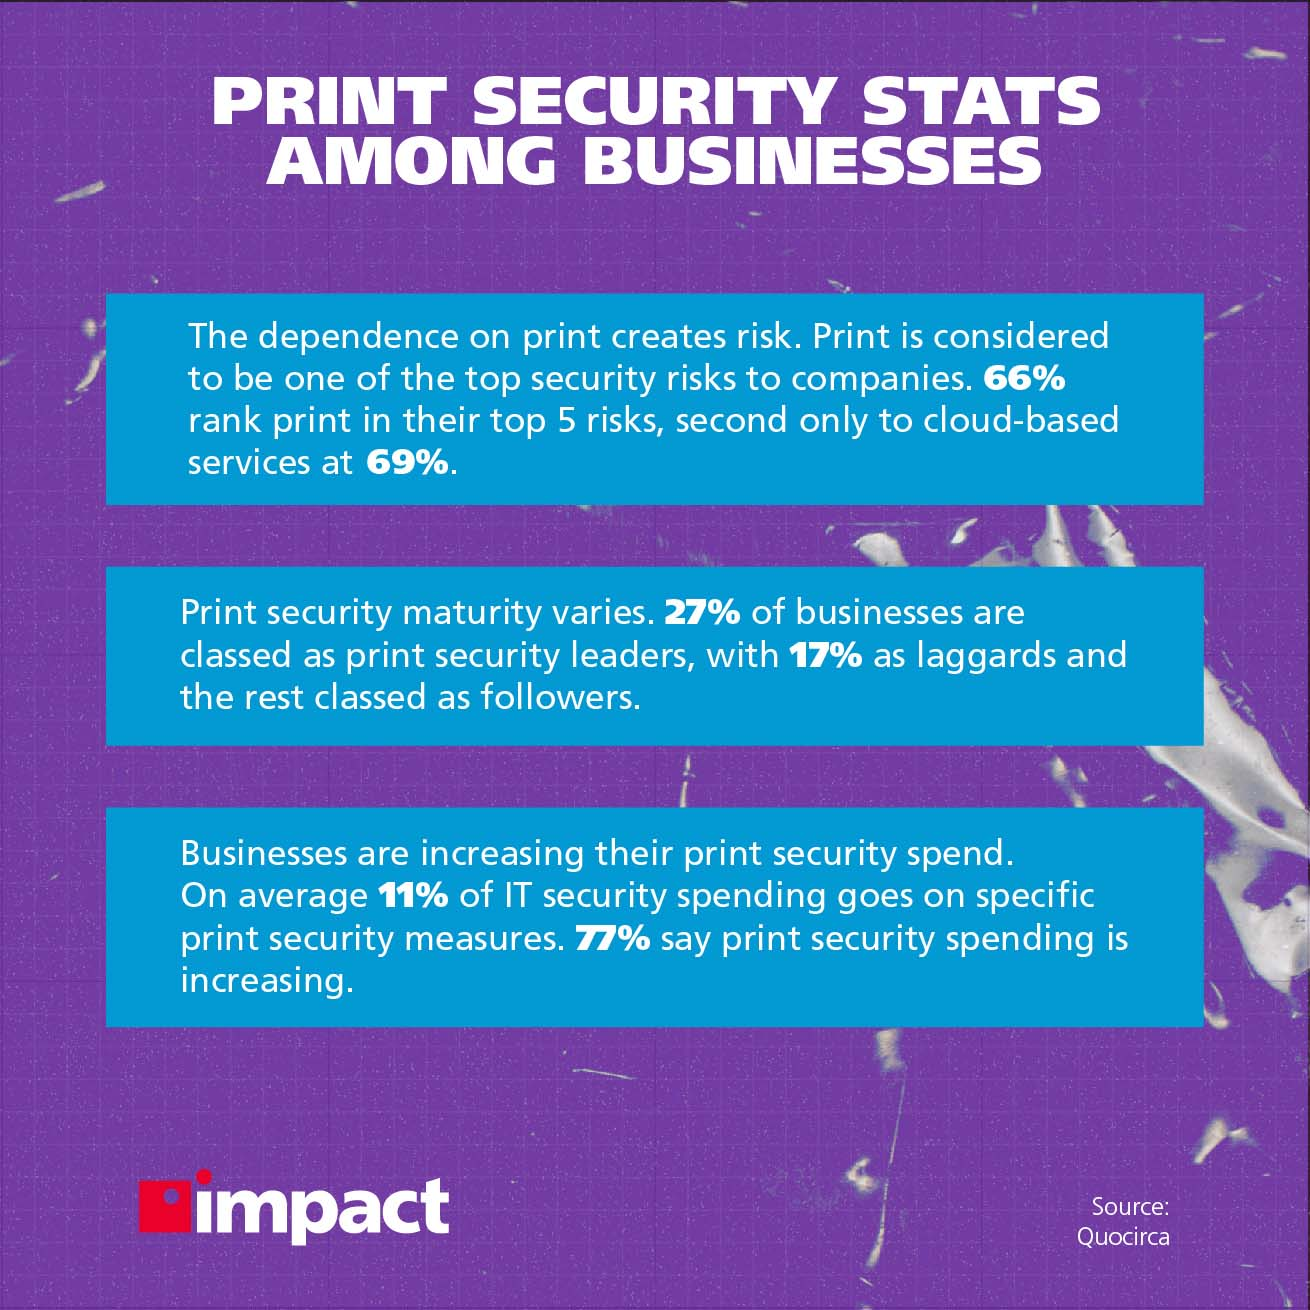 Info image on print security stats among businesses.